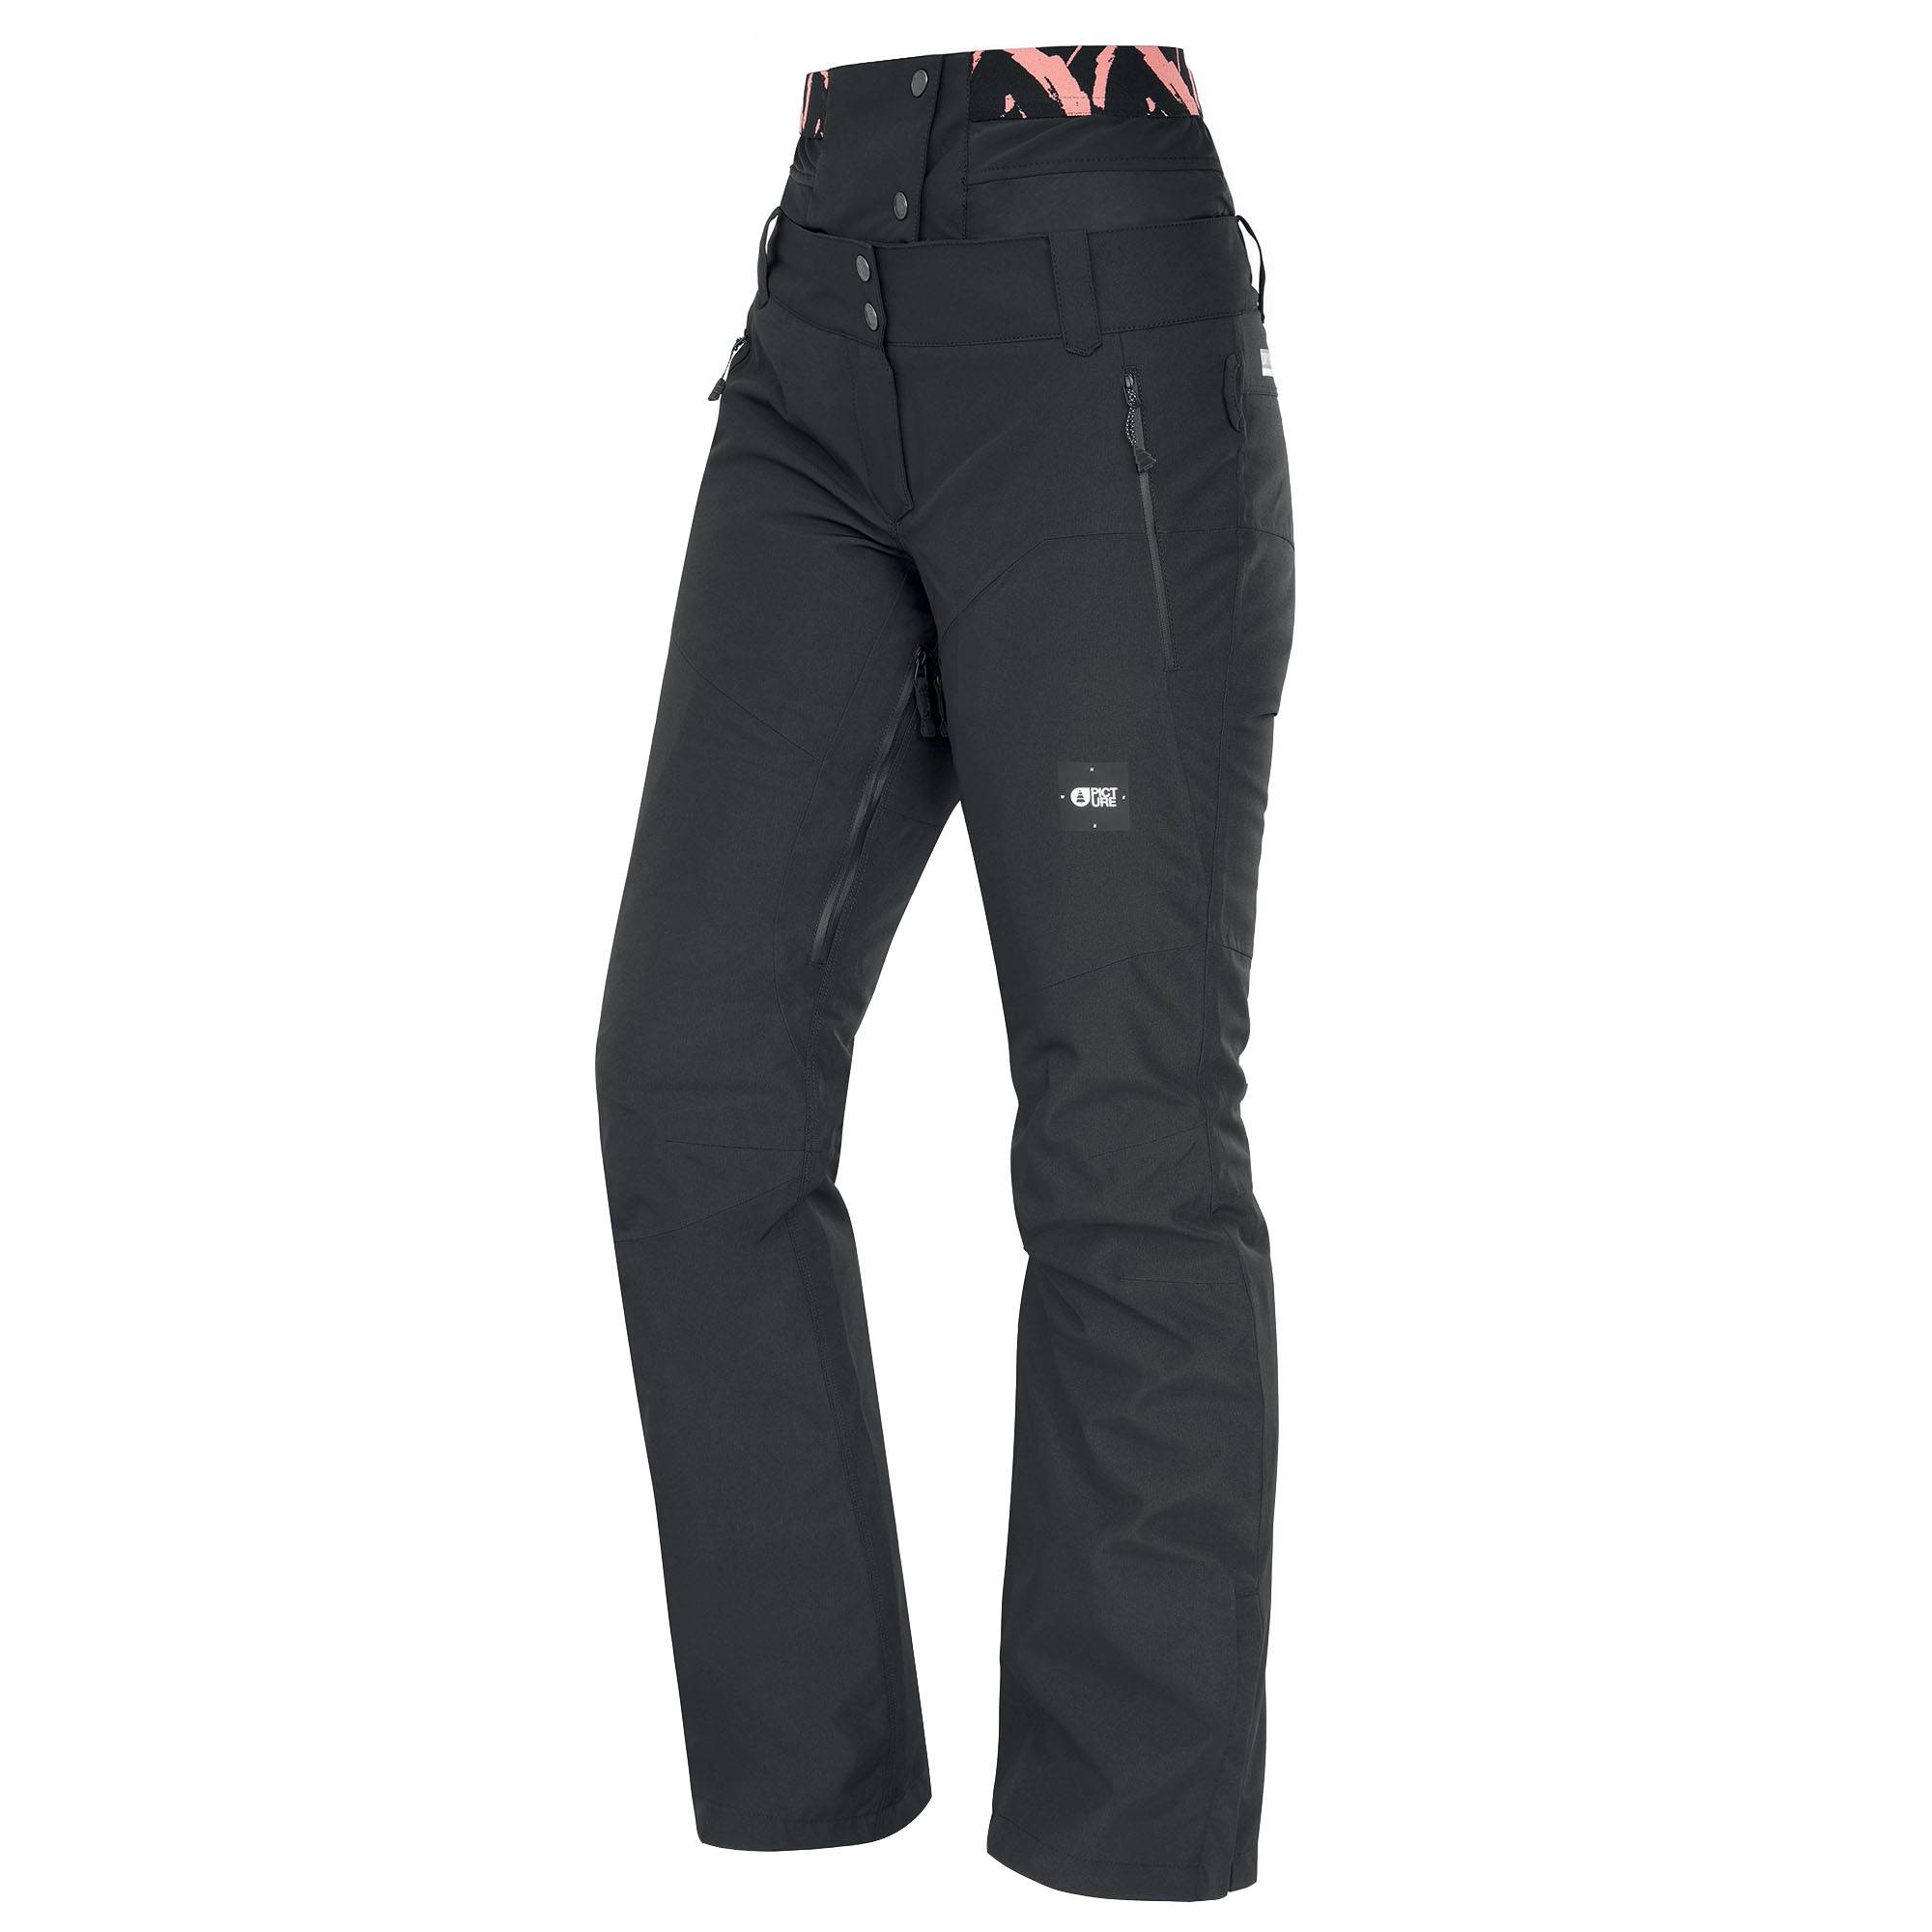 Picture Organic Clothing Women's Exa Snow Pants  - Peonies Black - Size: Extra Large